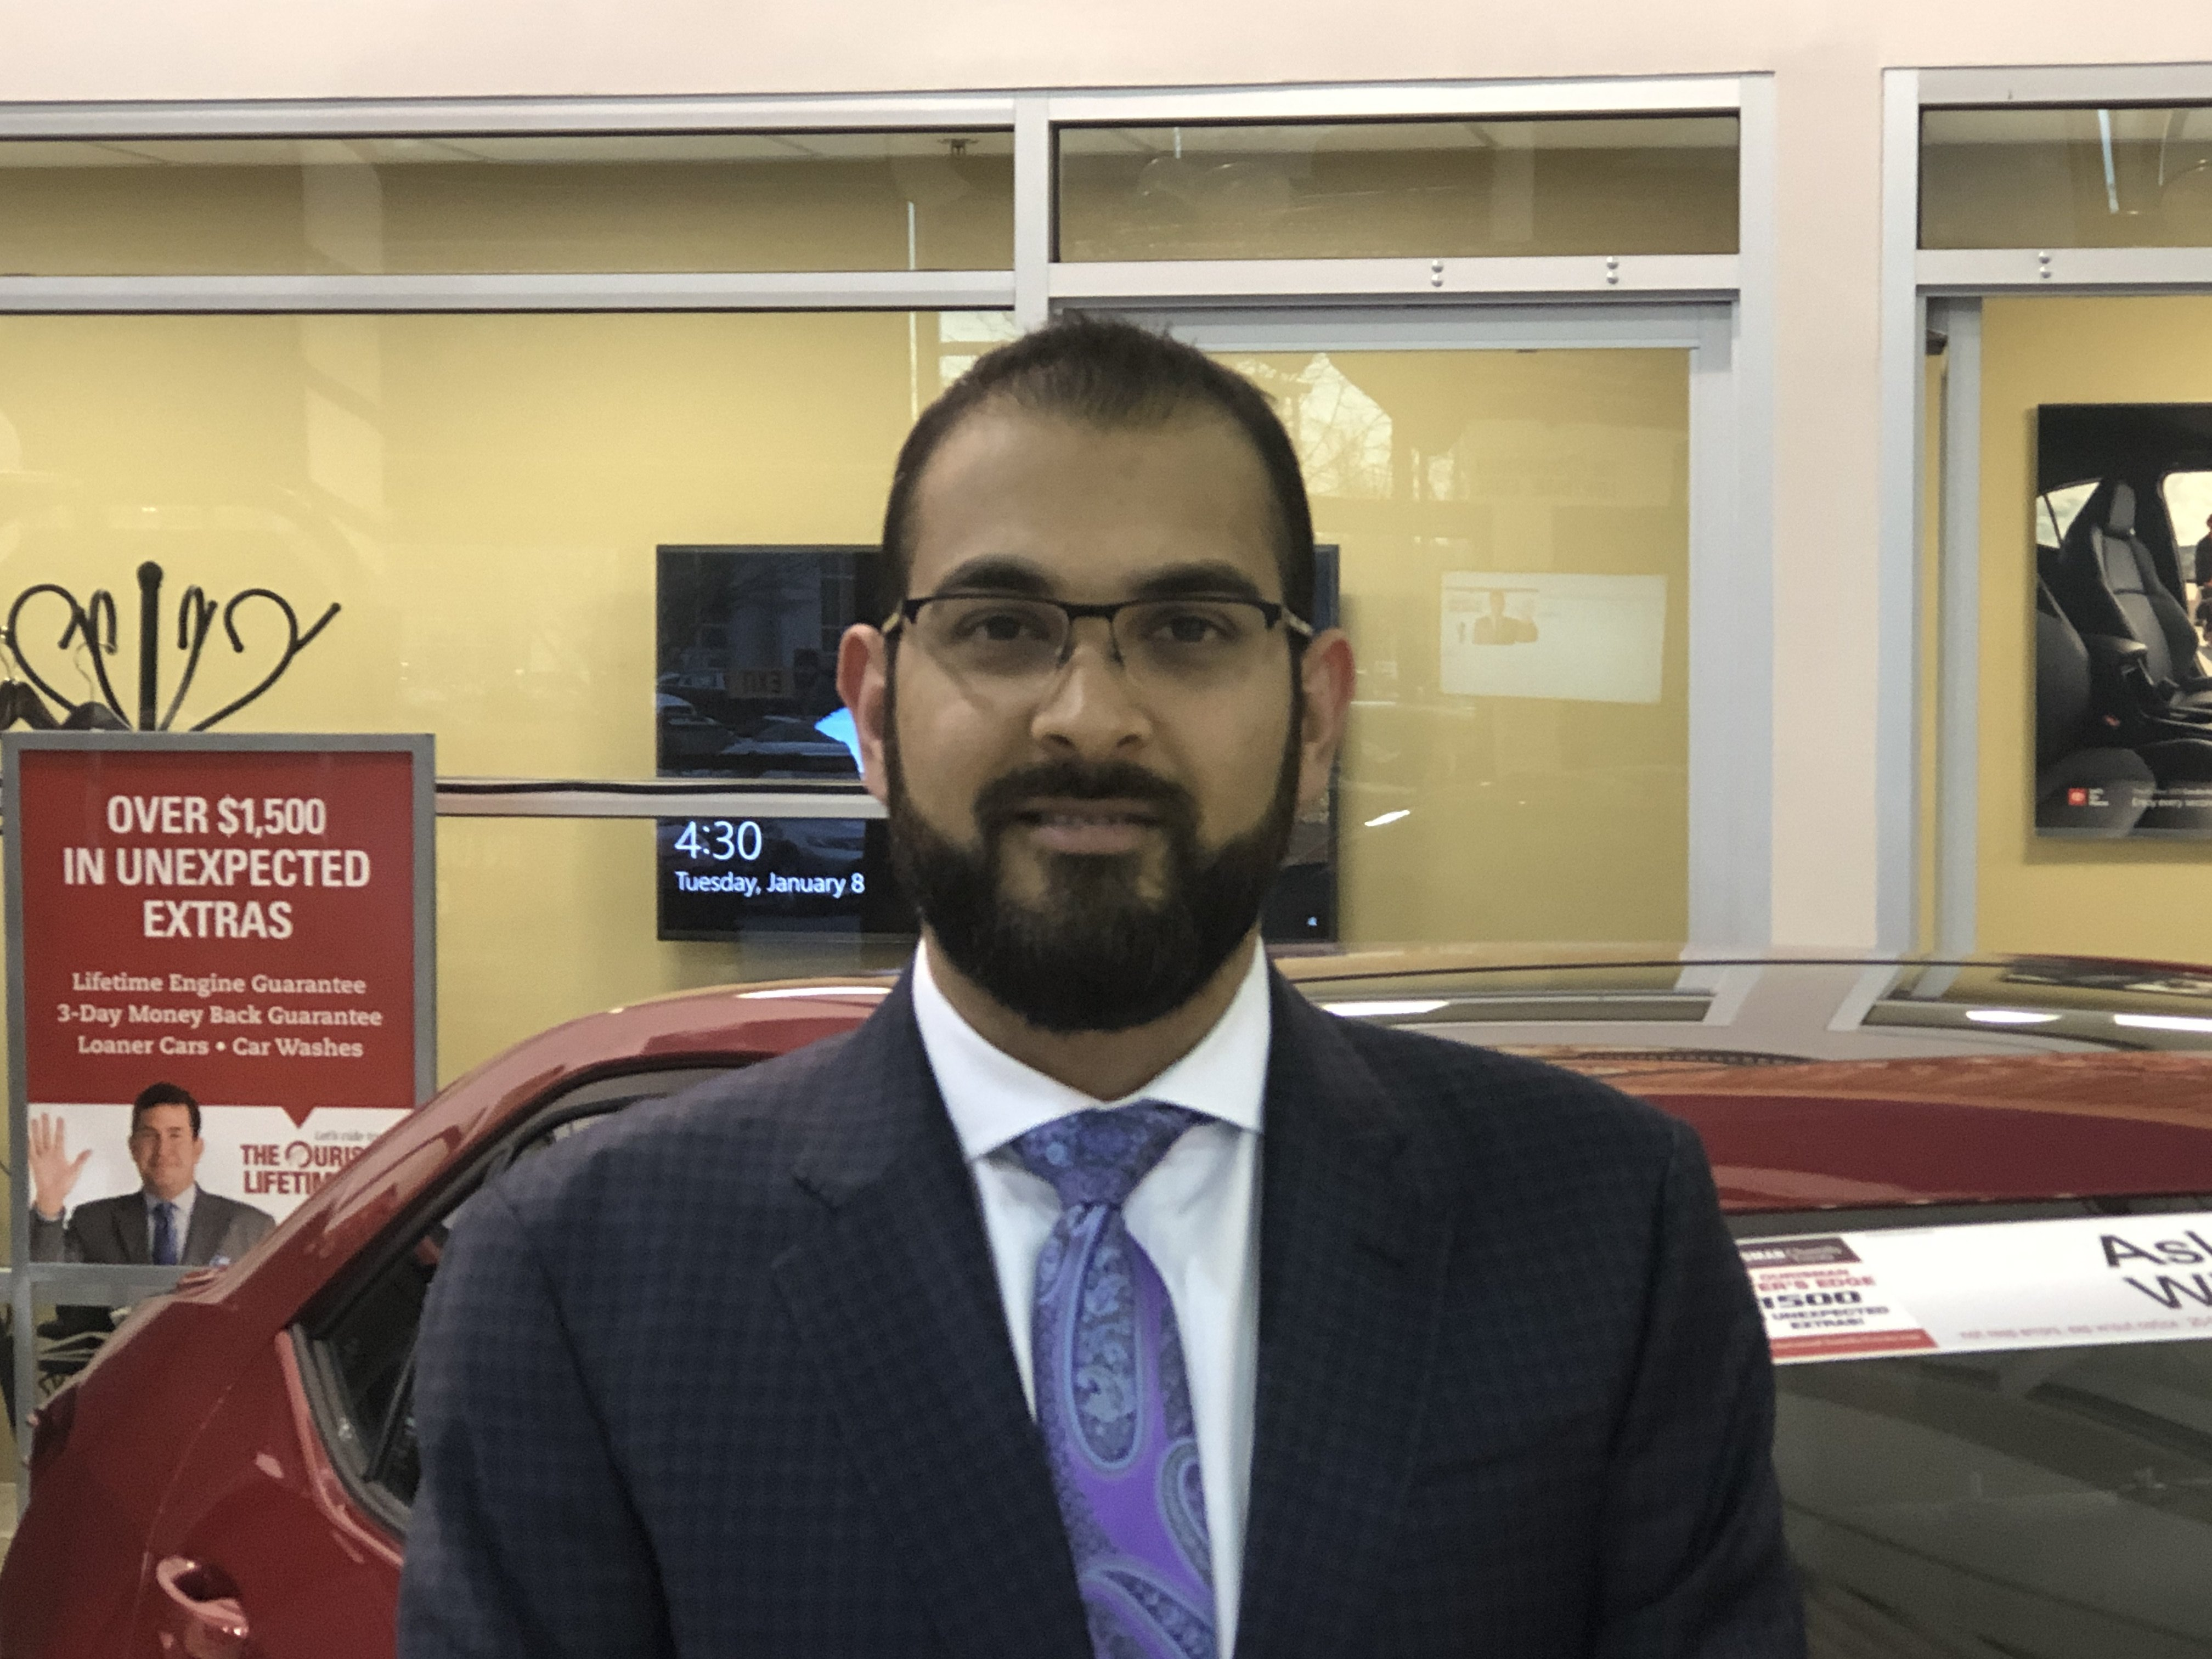 Anoop Sikka - Sales Manager